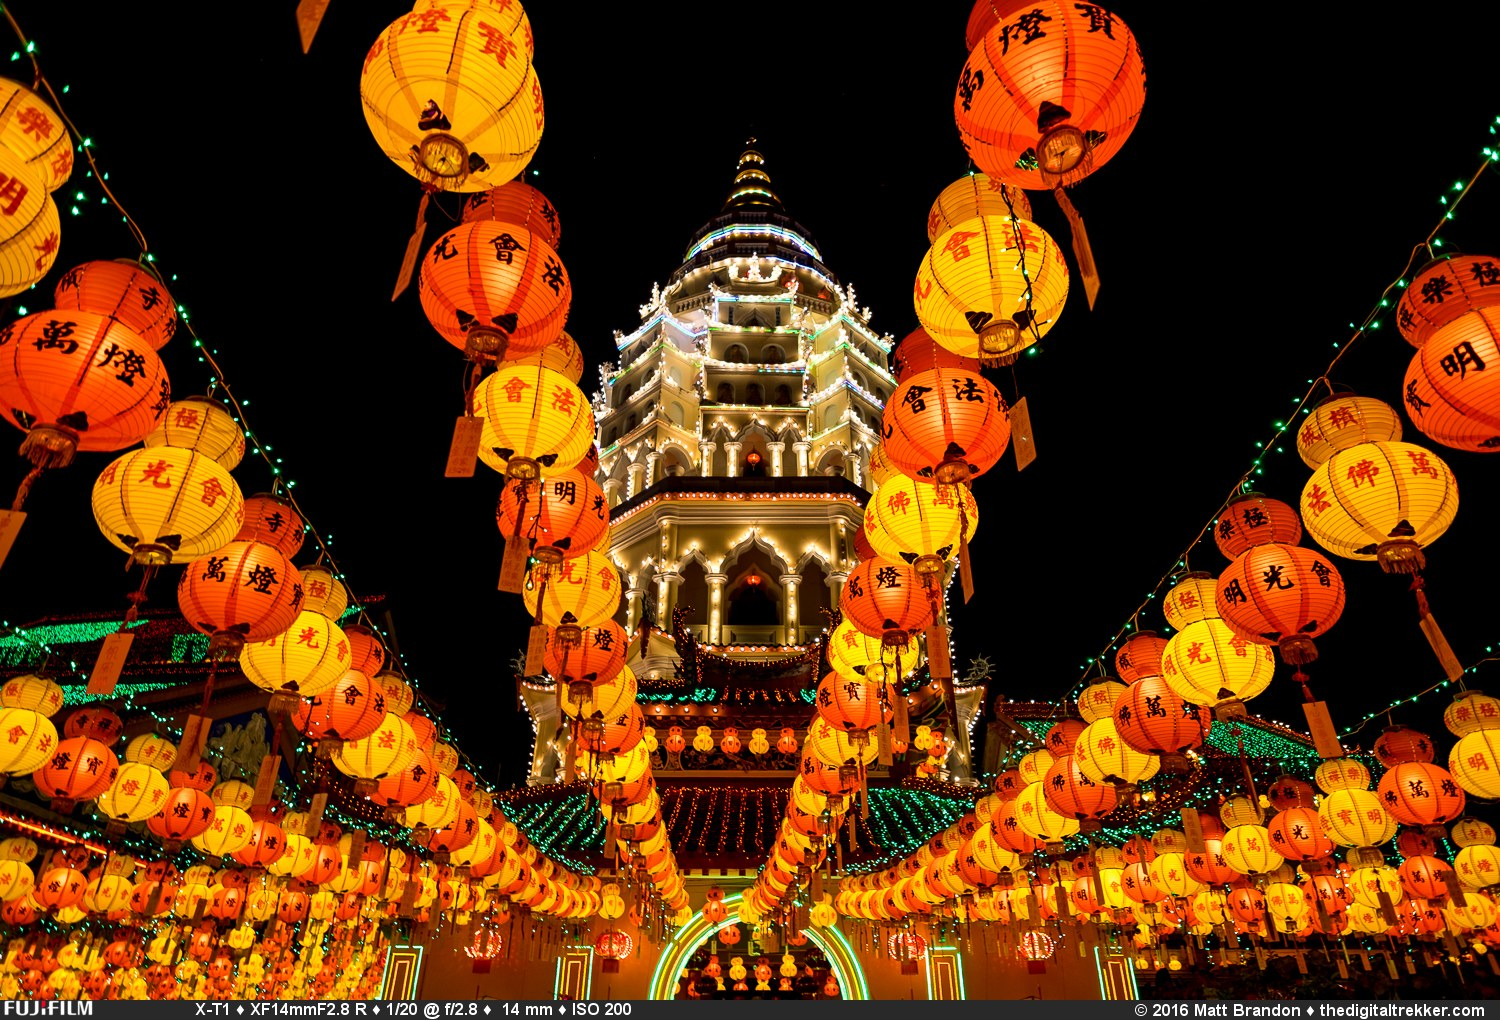 celebration chinese new year essay Below is an essay on how to celebrate chinese new year from anti essays, your source for research papers, essays, and term paper examples chinese new year, or chinese spring festival, holds the most significant position among all chinese festivals and holidays.